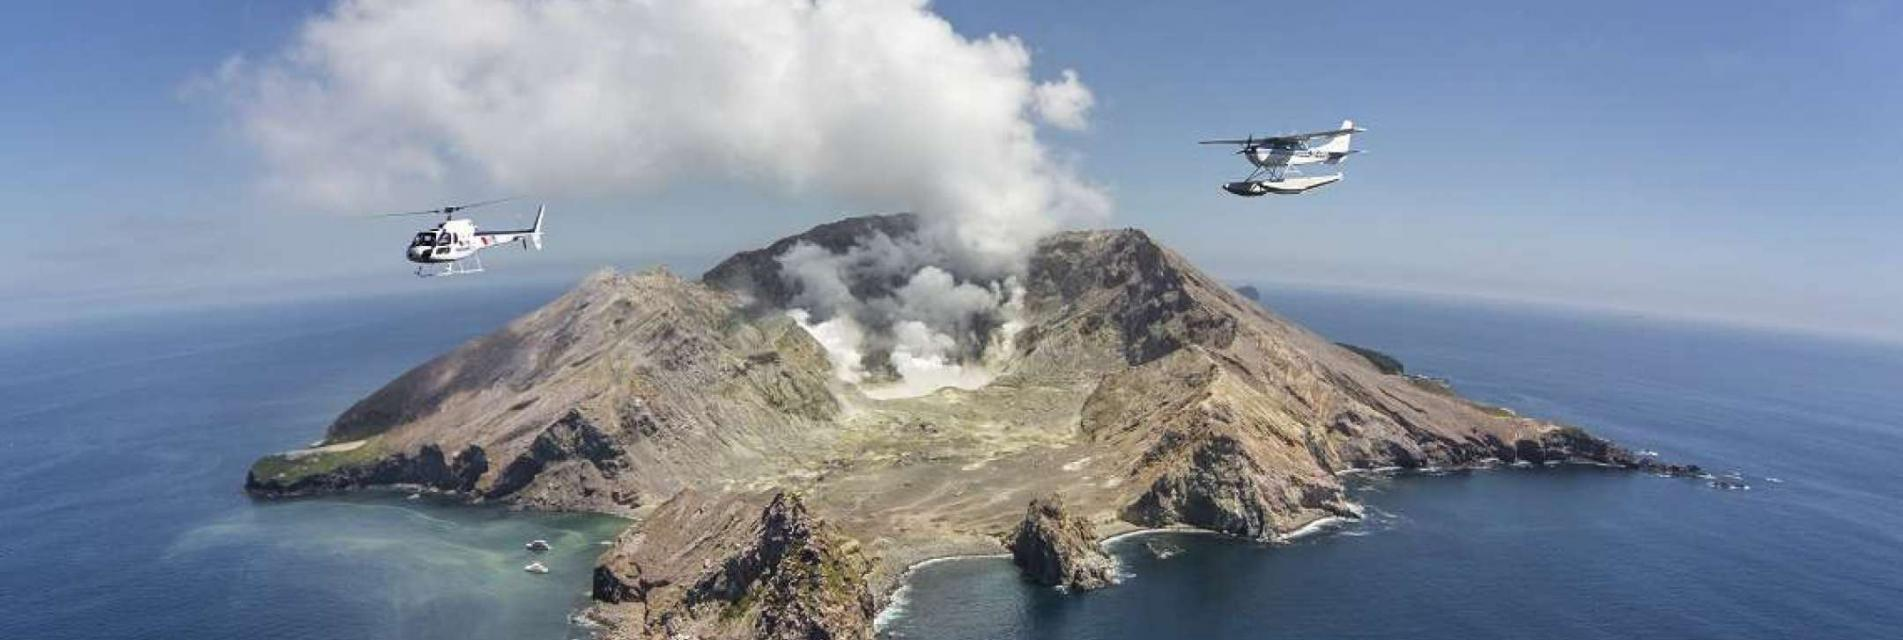 Hero image White Island by Helicopter or Floatplane 1 2 1 0 0 0 0 0 0 0 0